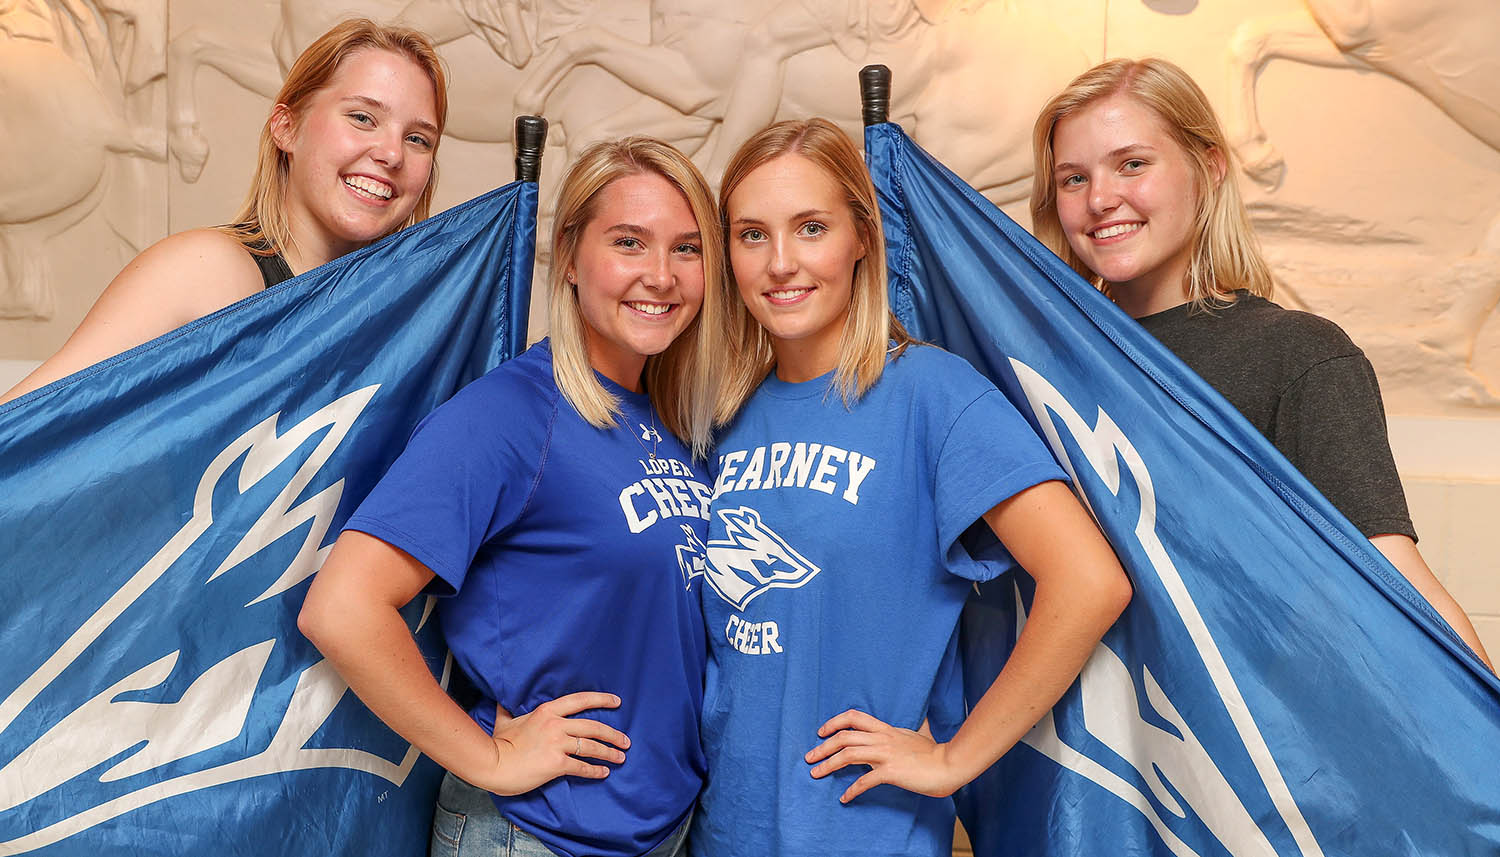 Emily Petersen, second from right, is pictured with her sisters, from left, Rebekah, Sarah and Hannah. Emily, Rebekah and Hannah currently attend UNK and Sarah graduated in May.